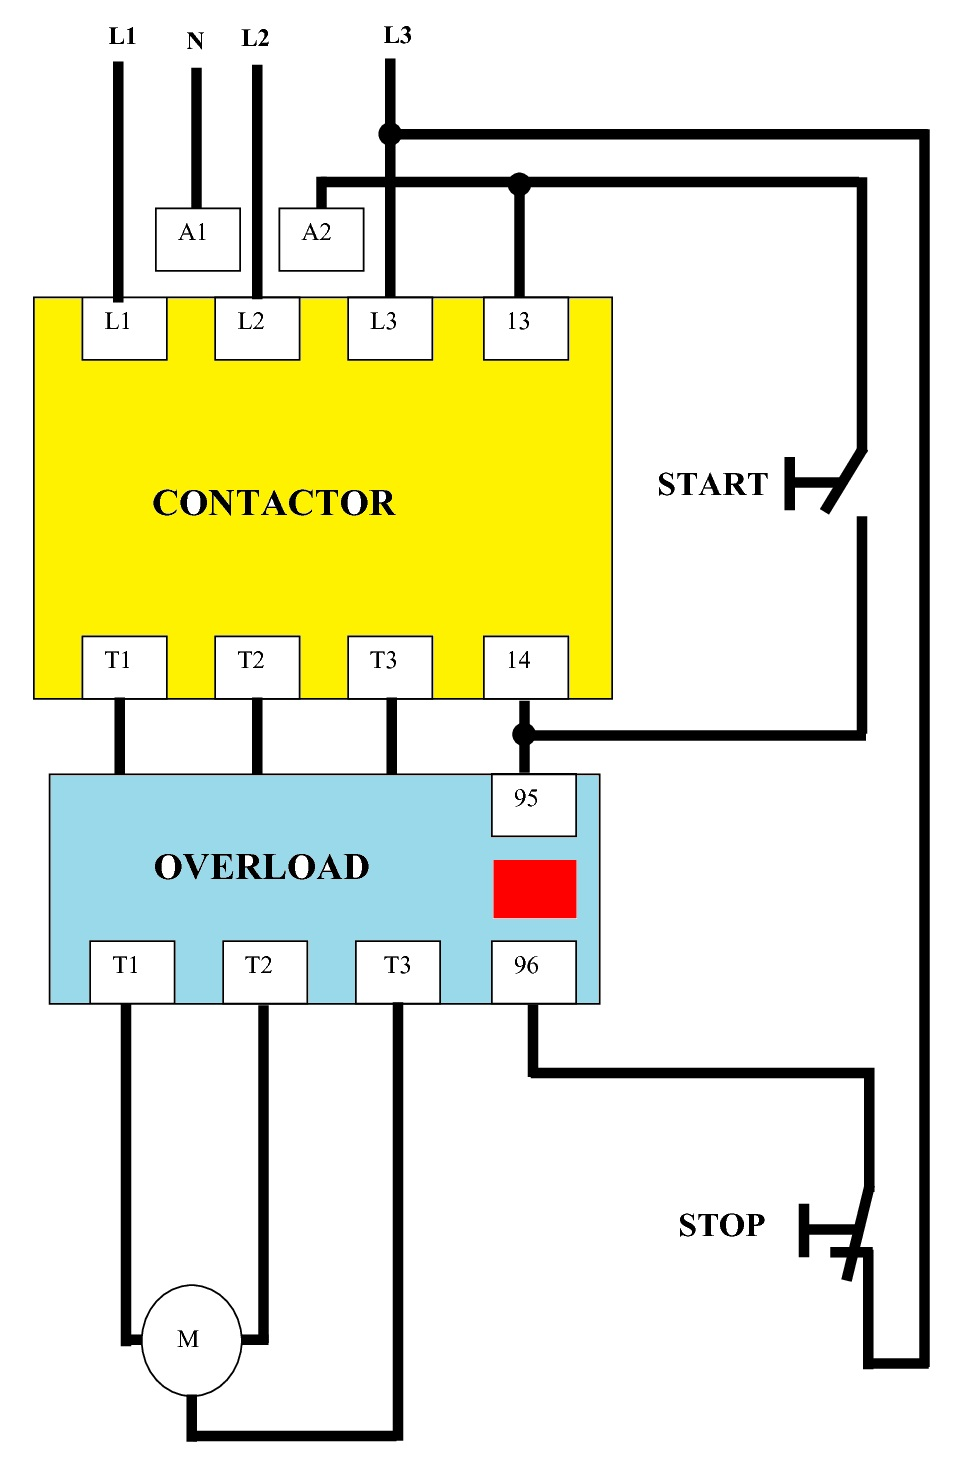 Direct On Line (DOL) Wiring Diagram for 3Phase with 110230VAC Control Circuit | Elec Eng World